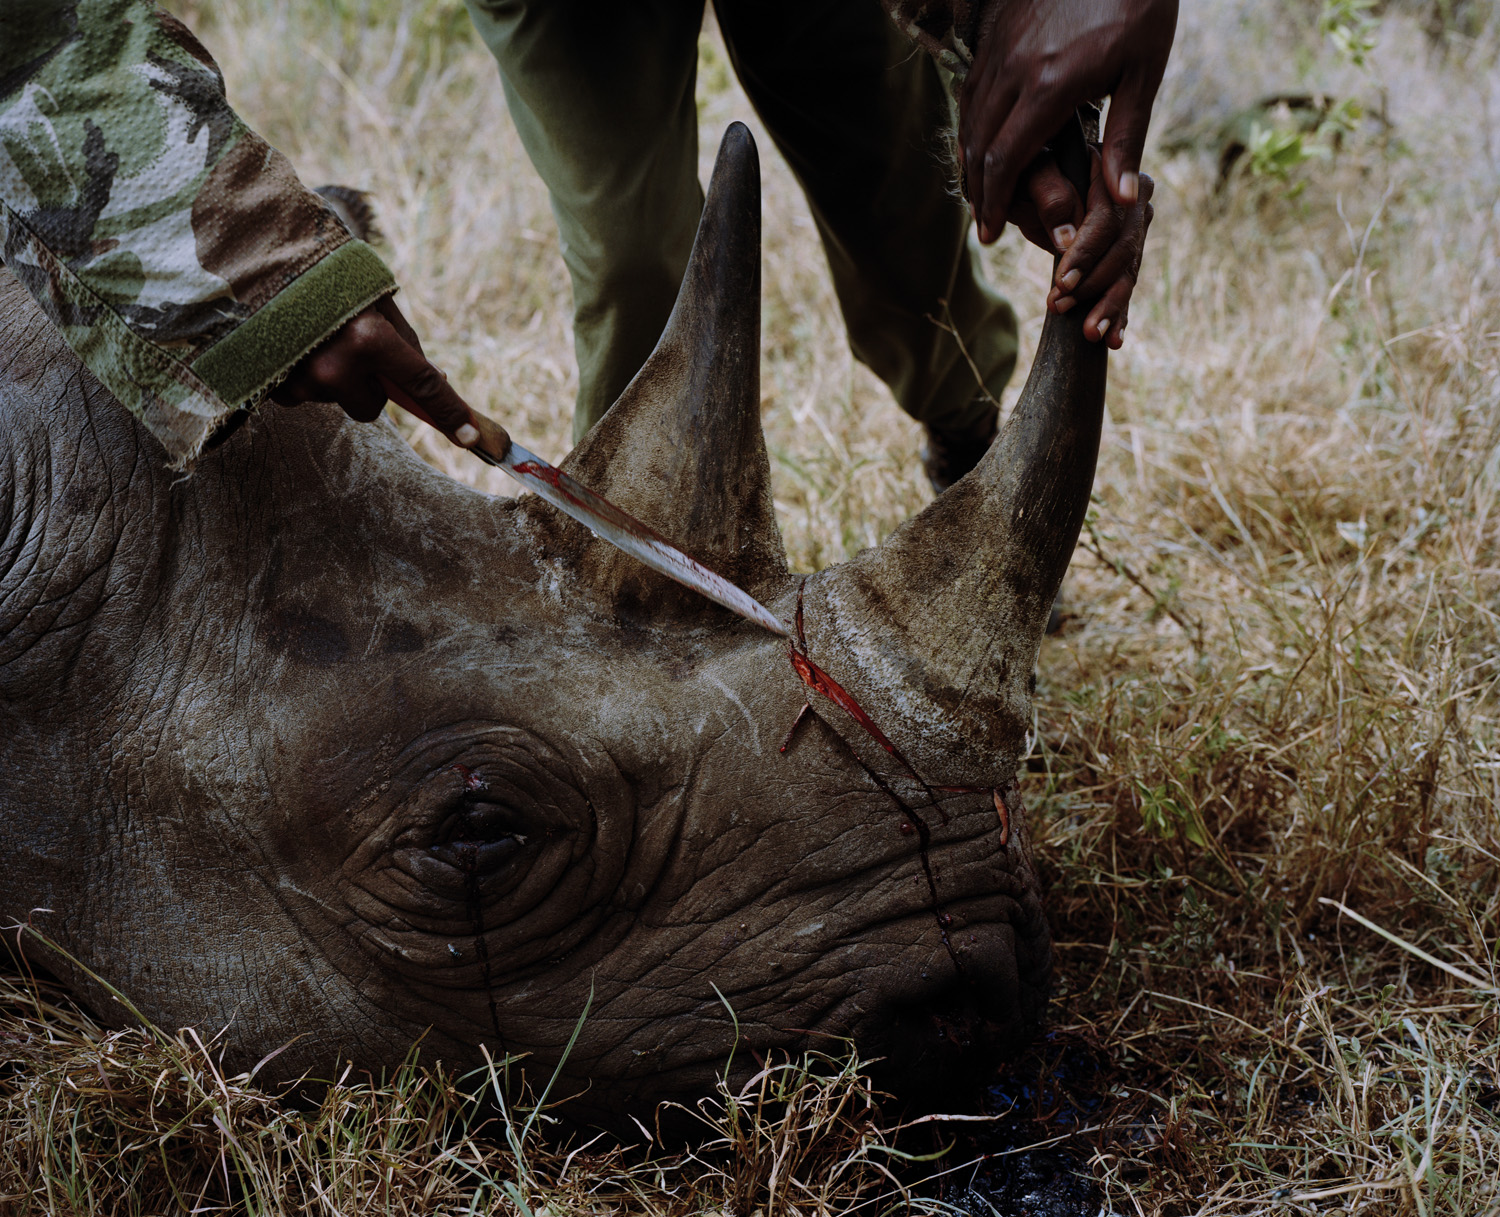 A conservancy ranger removes the horn from a rhino that was killed by poachers who fled the scene on hearing the arrival of an airborne anti poaching team in the Lewa Conservancy, northern Kenya.                                                              When poachers flee without removing rhino horn, or elephant ivory, conservancy rangers, or Kenya Wildlife service are called upon to remove it, once removed it will be taken into custody by Kenya Wildlife Service and stored at its Nairobi Headquarters.